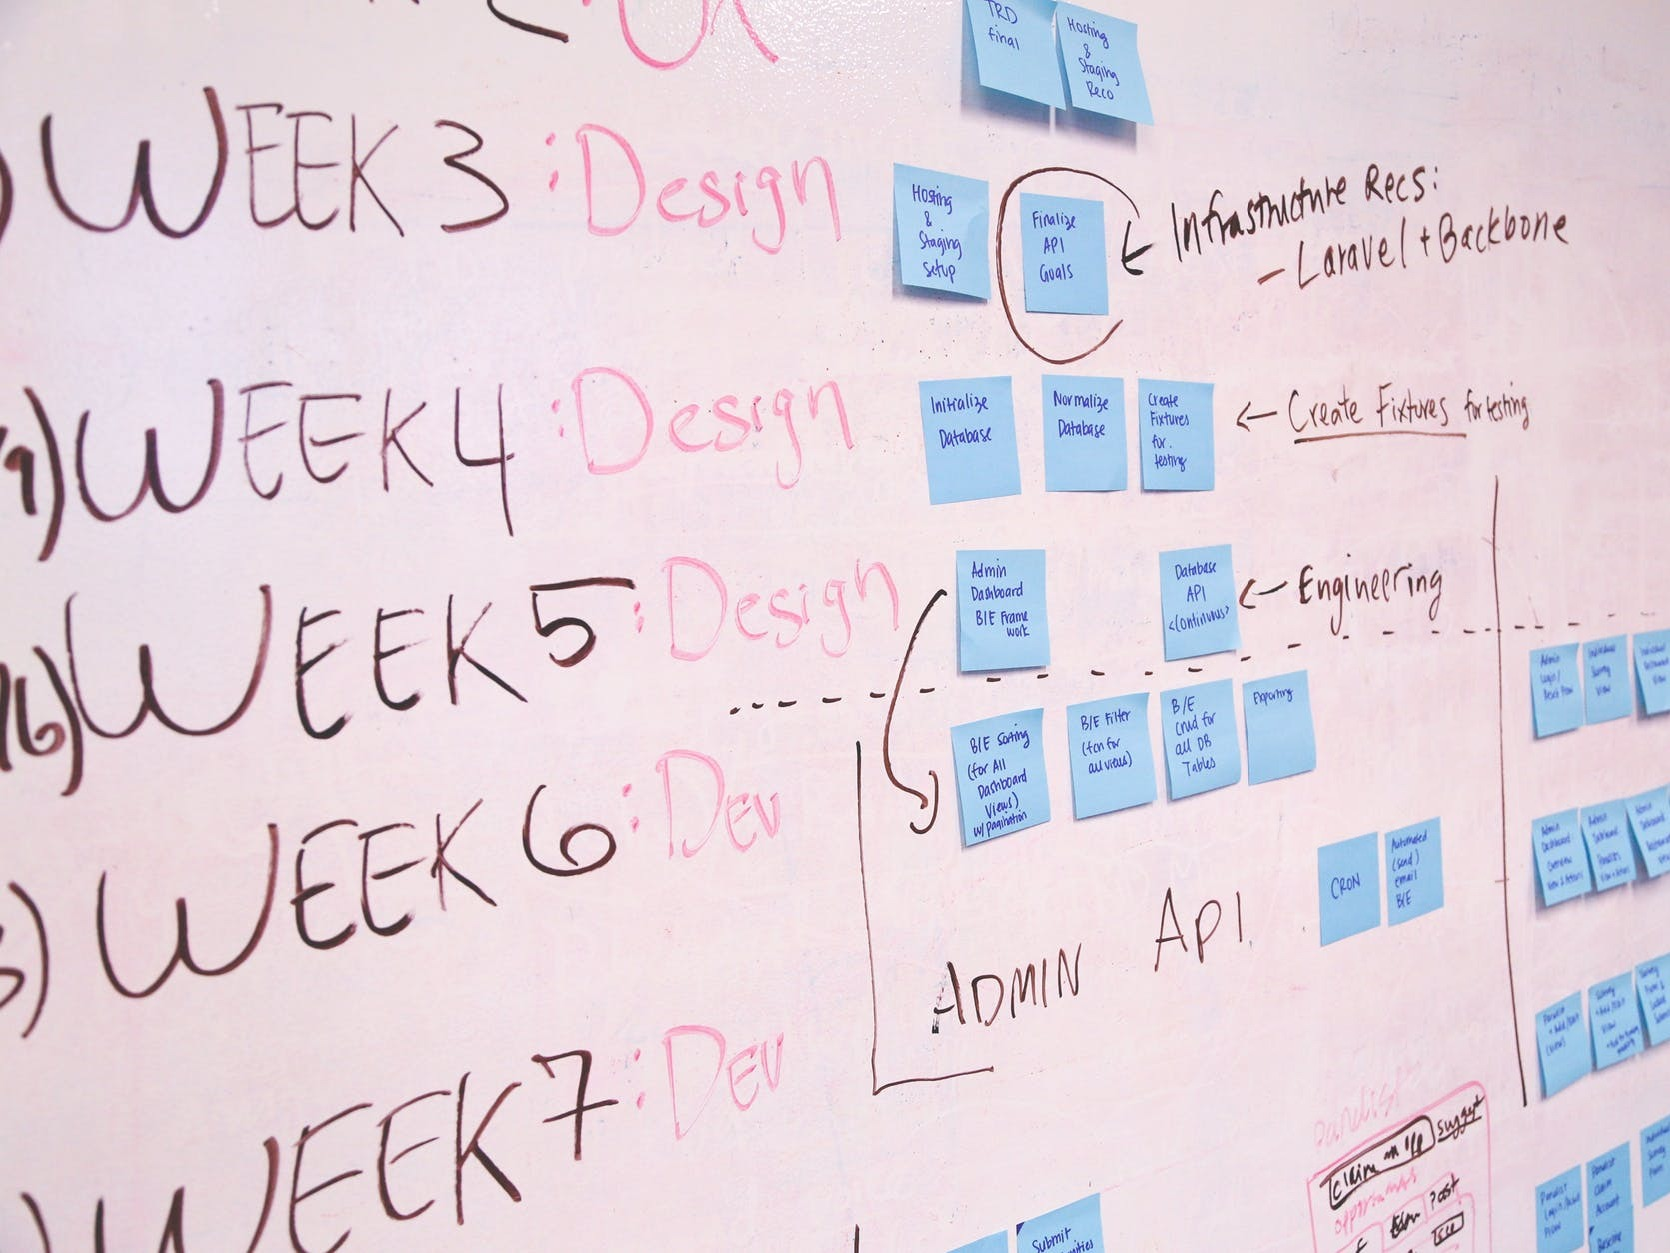 Whiteboard with Post-It Notes